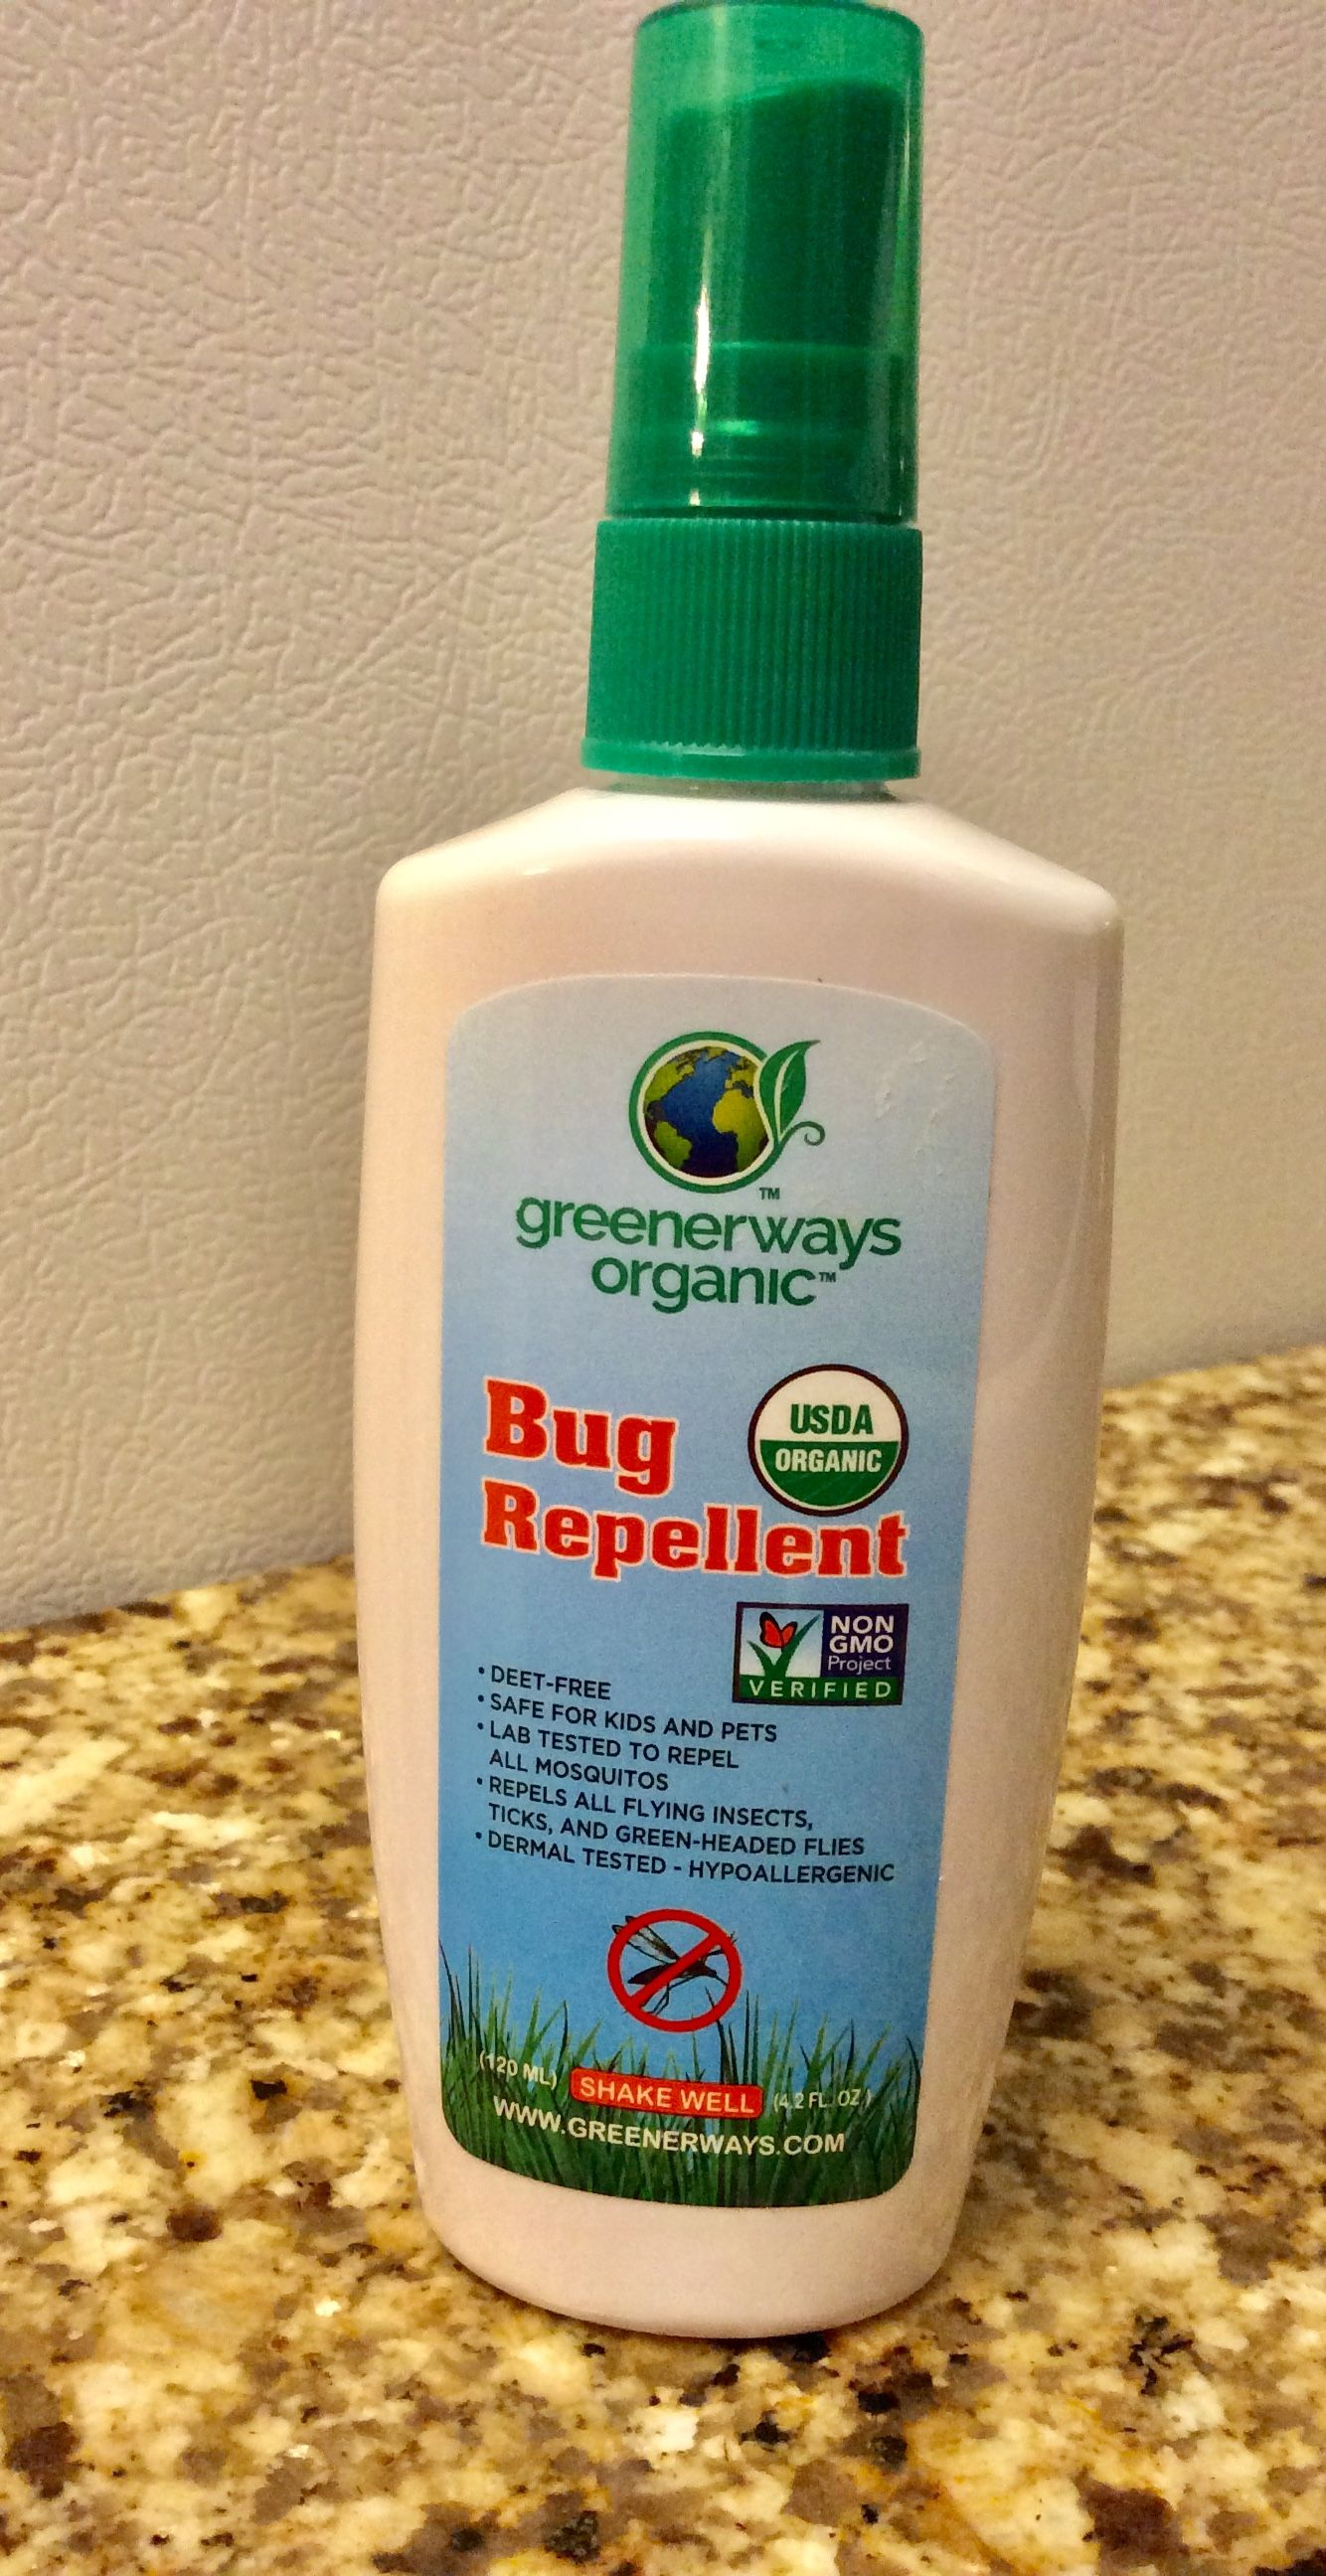 Greenerways Organic Bug Repellent Priscilla De Leon Organic